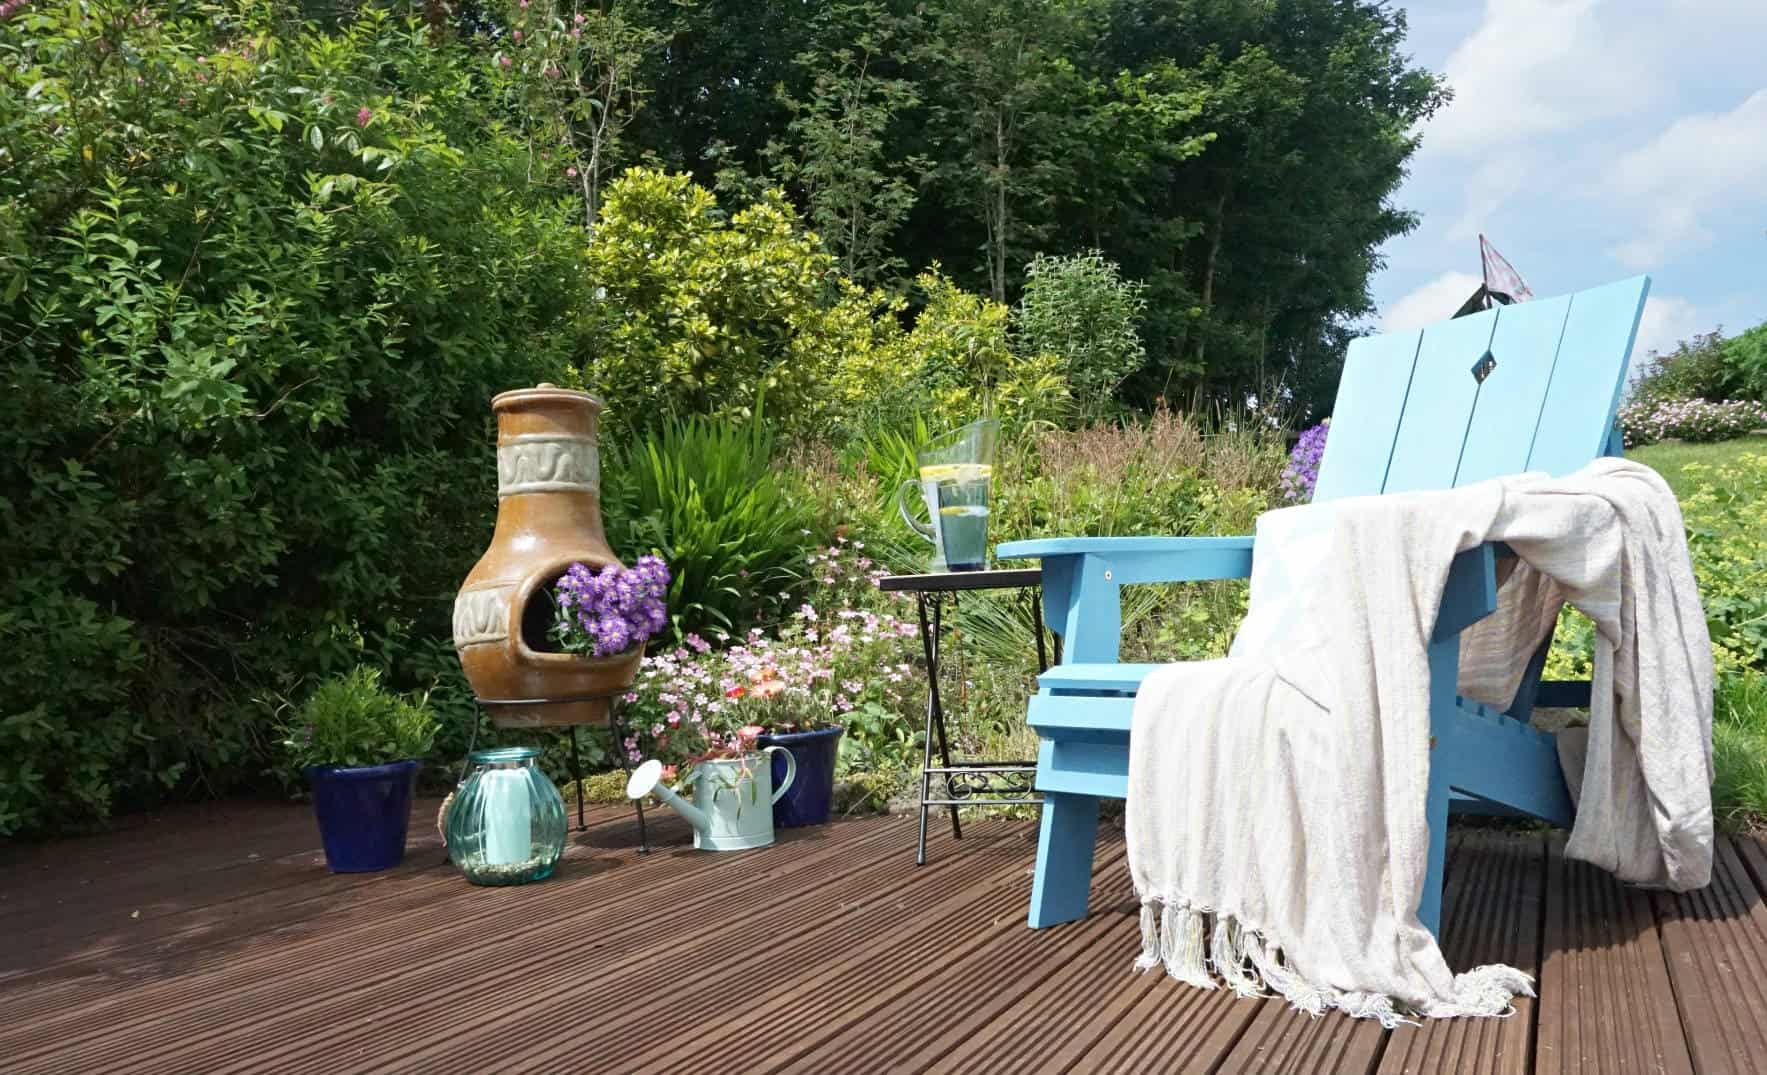 Creating A Garden Chill Space with TK MAXX